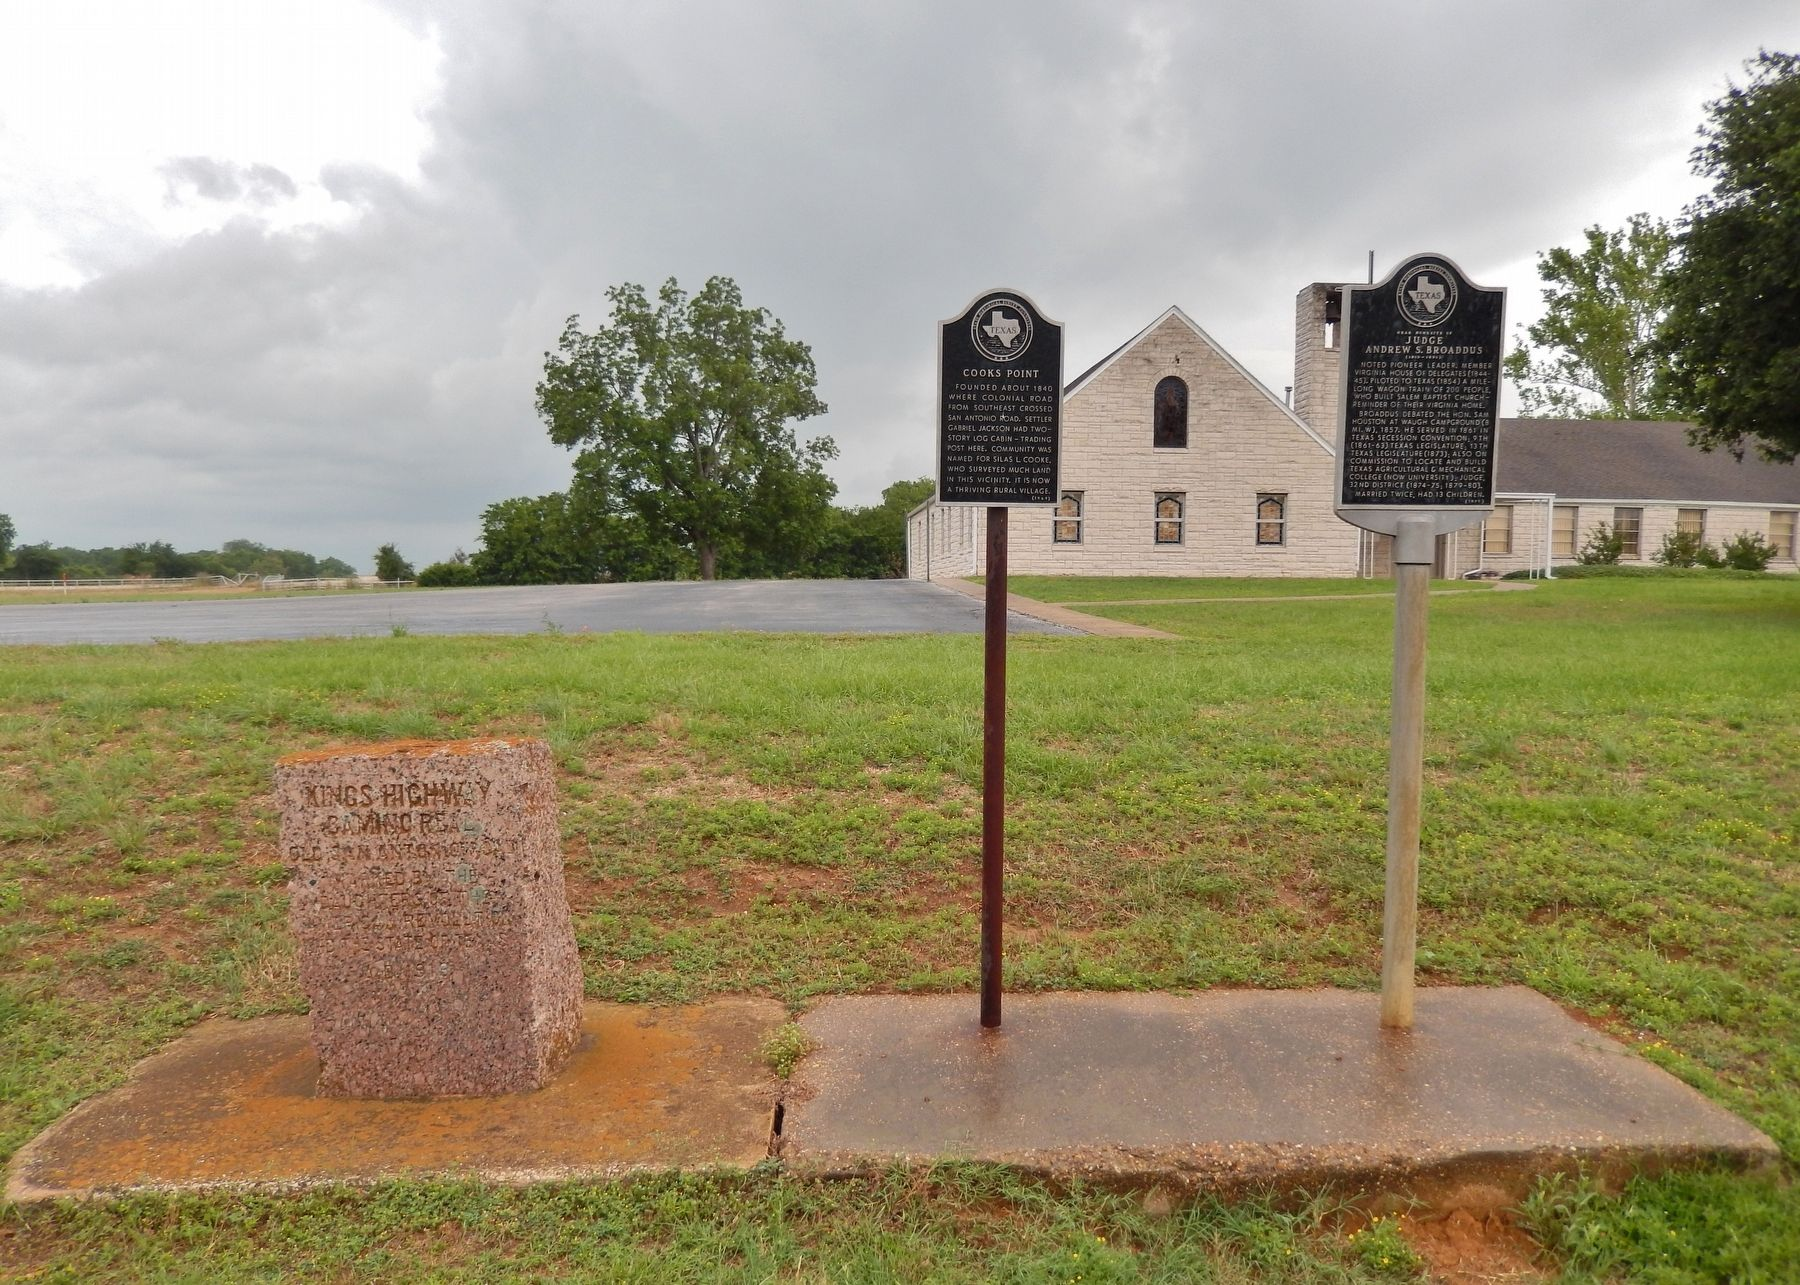 Near Homesite of Judge Andrew S. Broaddus Marker (<i>wide view showing adjacent markers</i>) image. Click for full size.